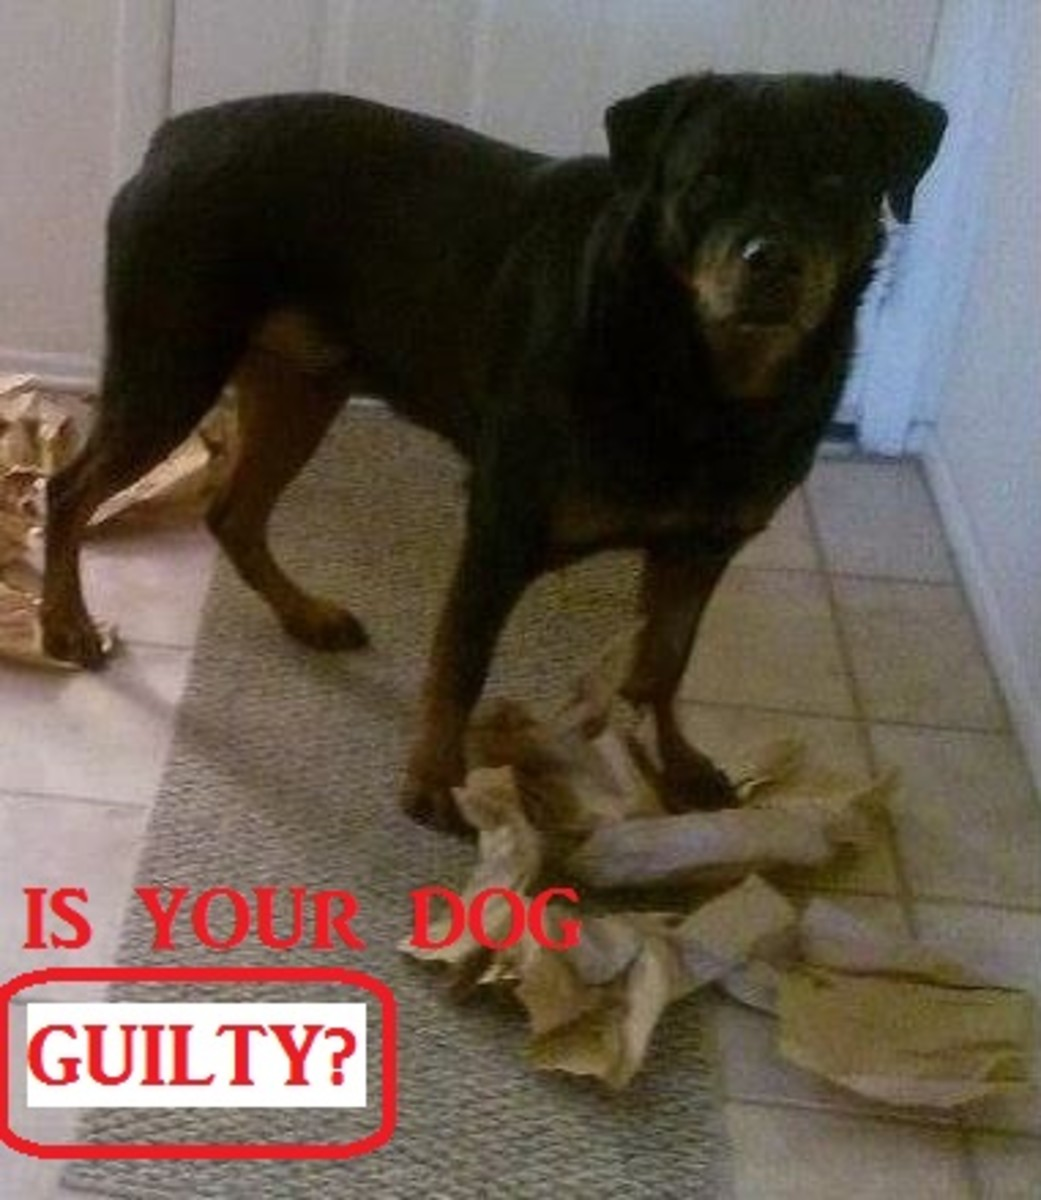 guilty-dog